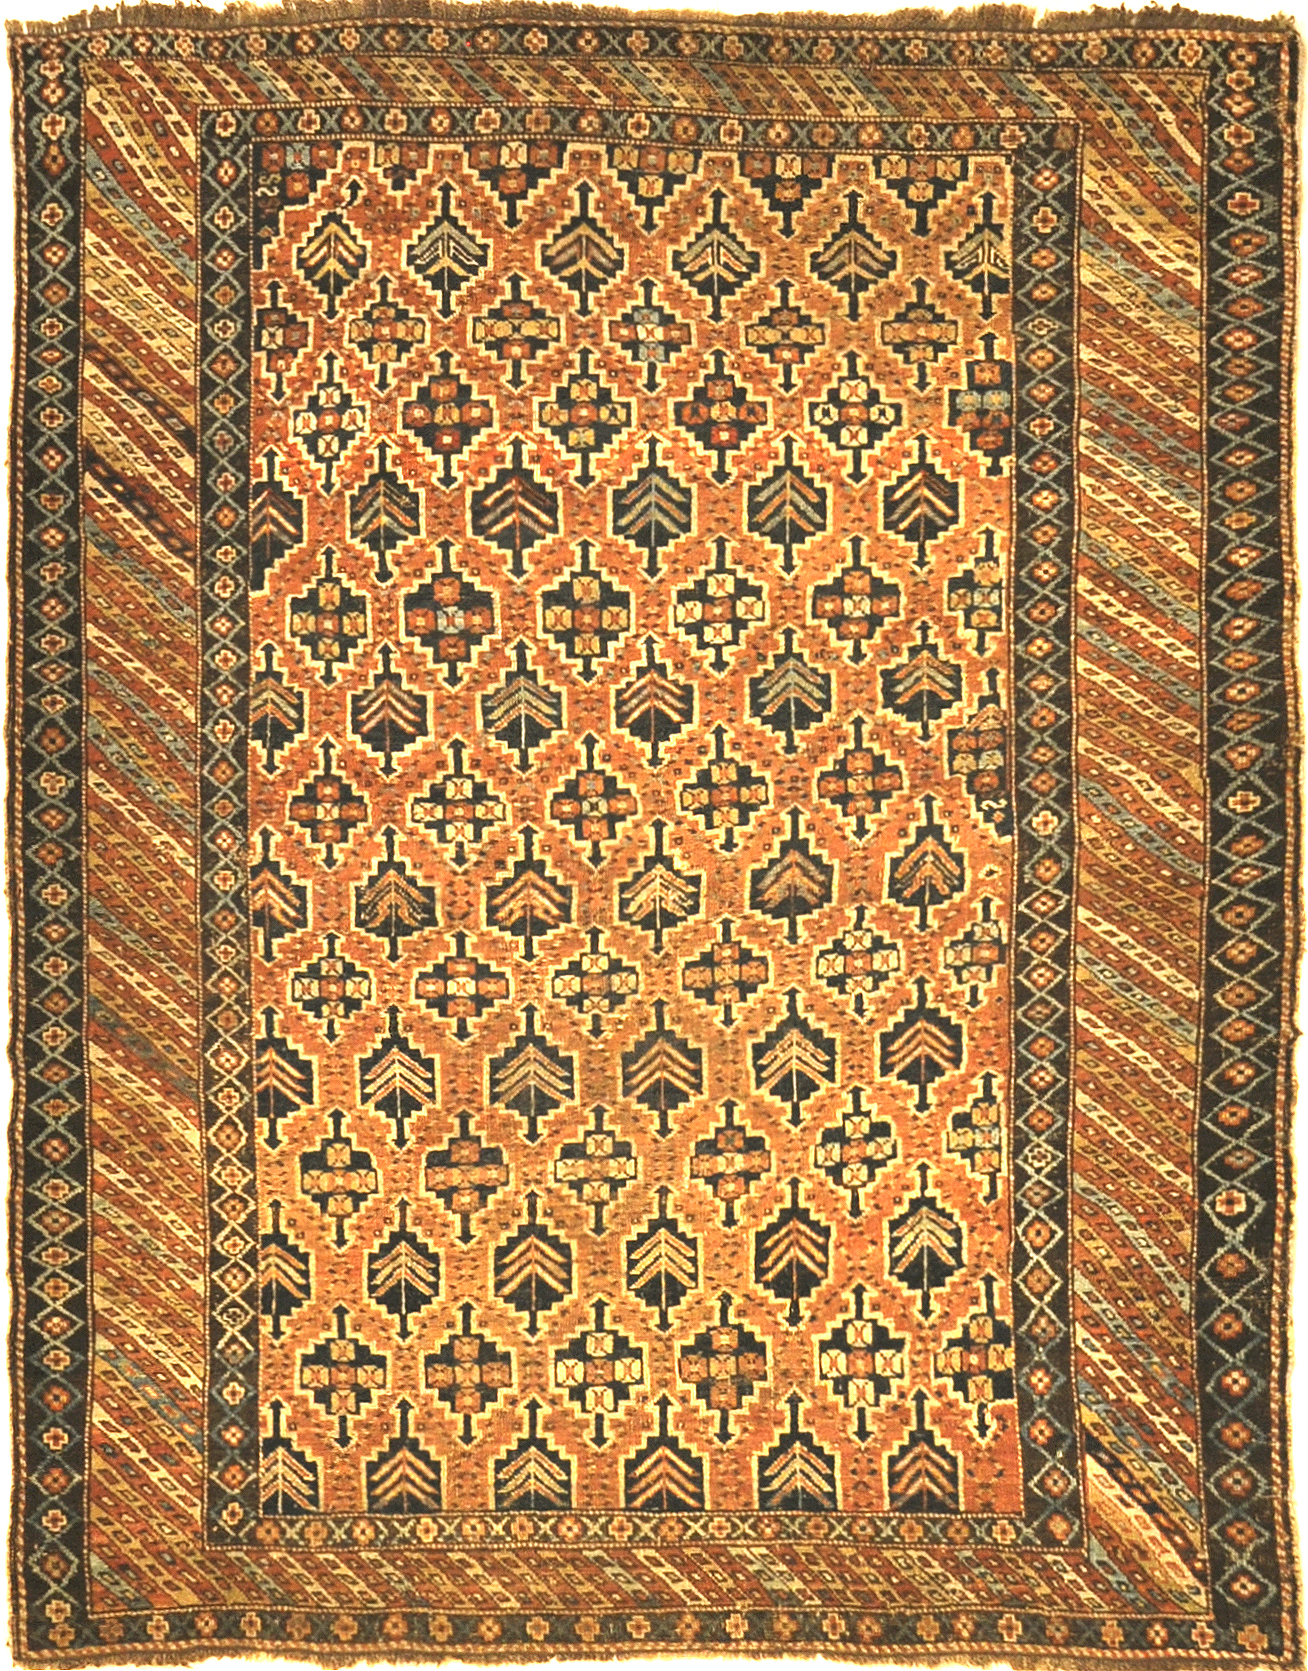 Antique Kuba Rug. A piece of genuine authentic woven antique carpet art sold by Santa Barbara Design Center, Rugs and More.